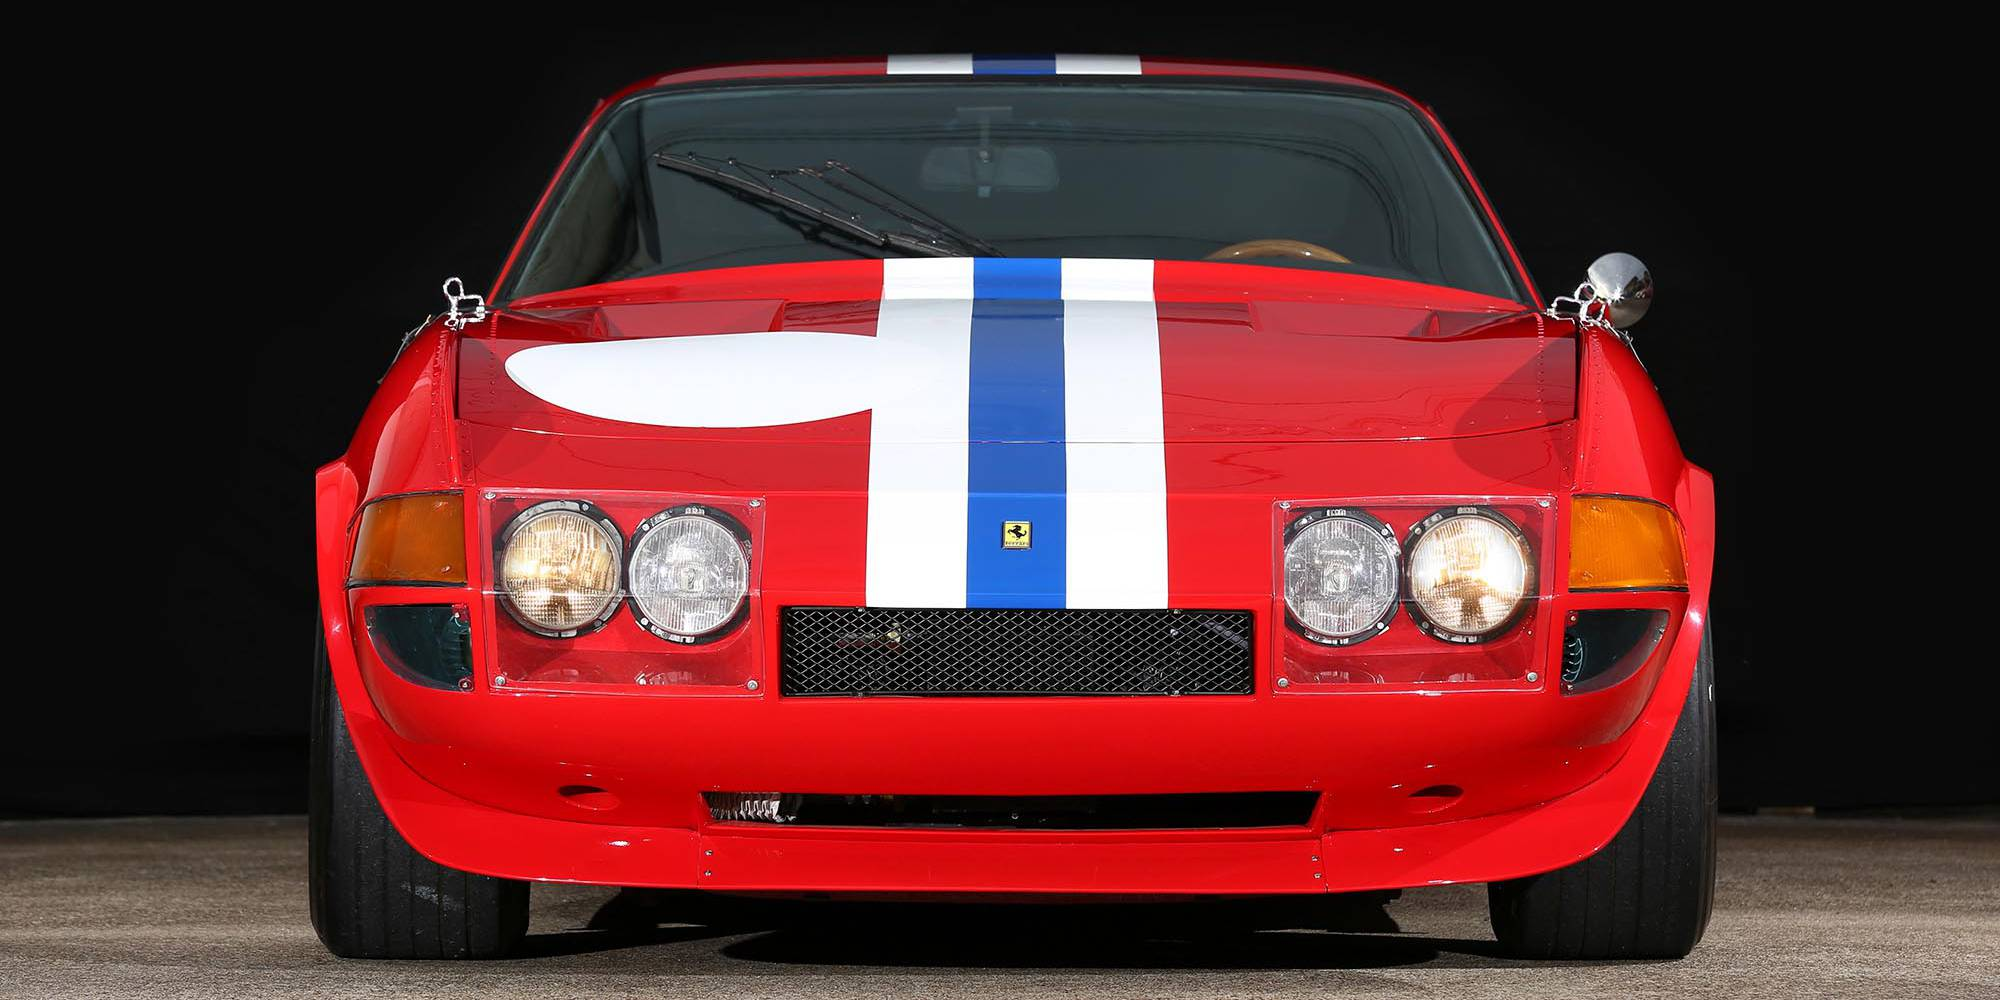 1969 365 Gtb 4 HD Wallpapers Download free images and photos [musssic.tk]